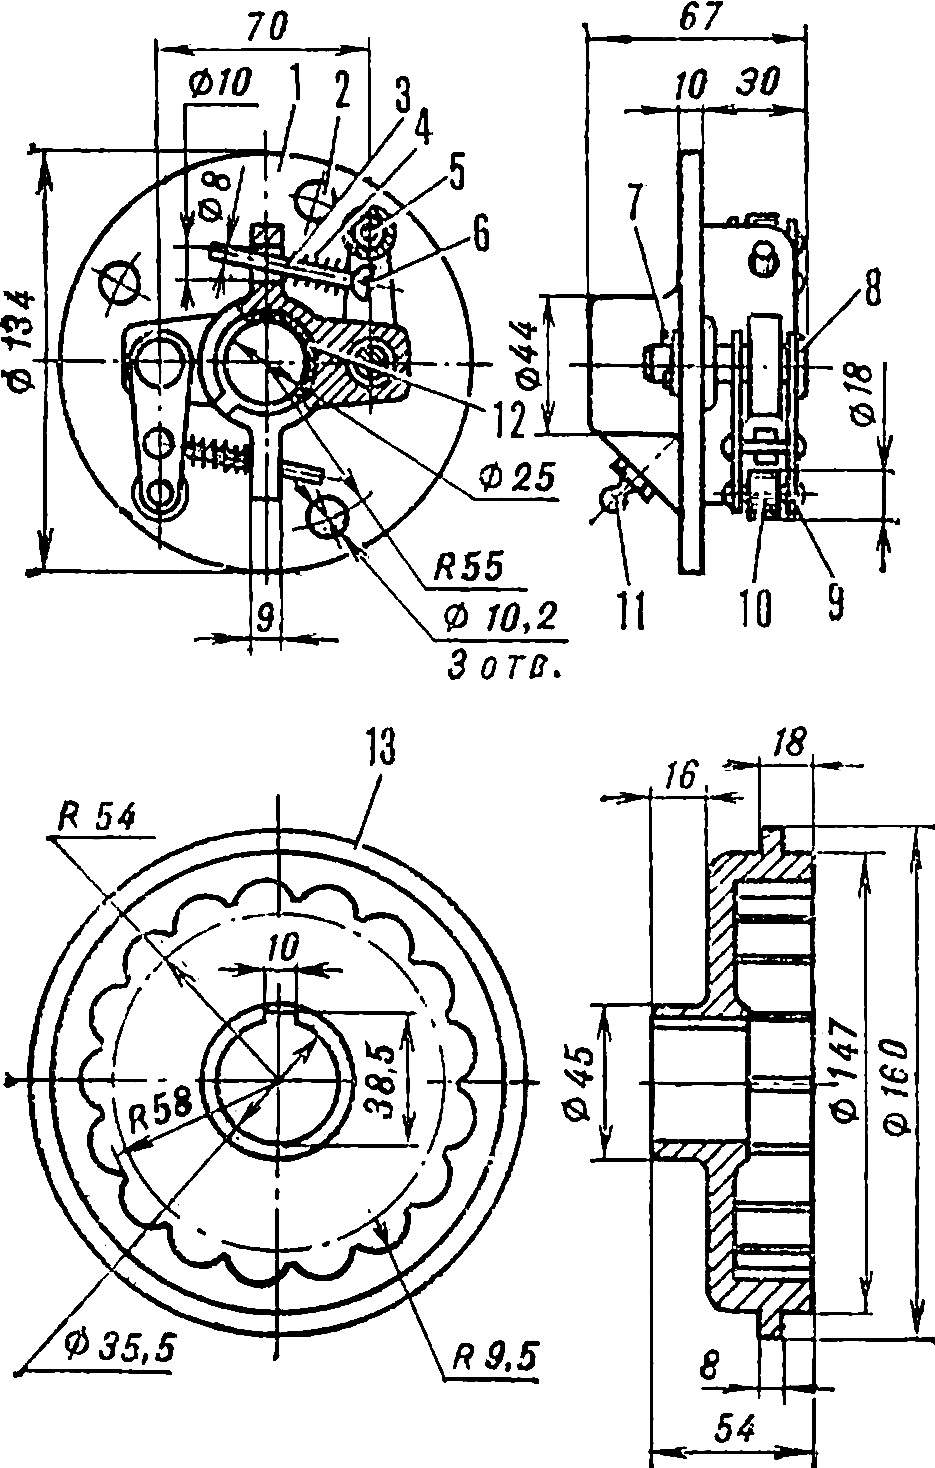 Fig. 8. The overrunning clutch.